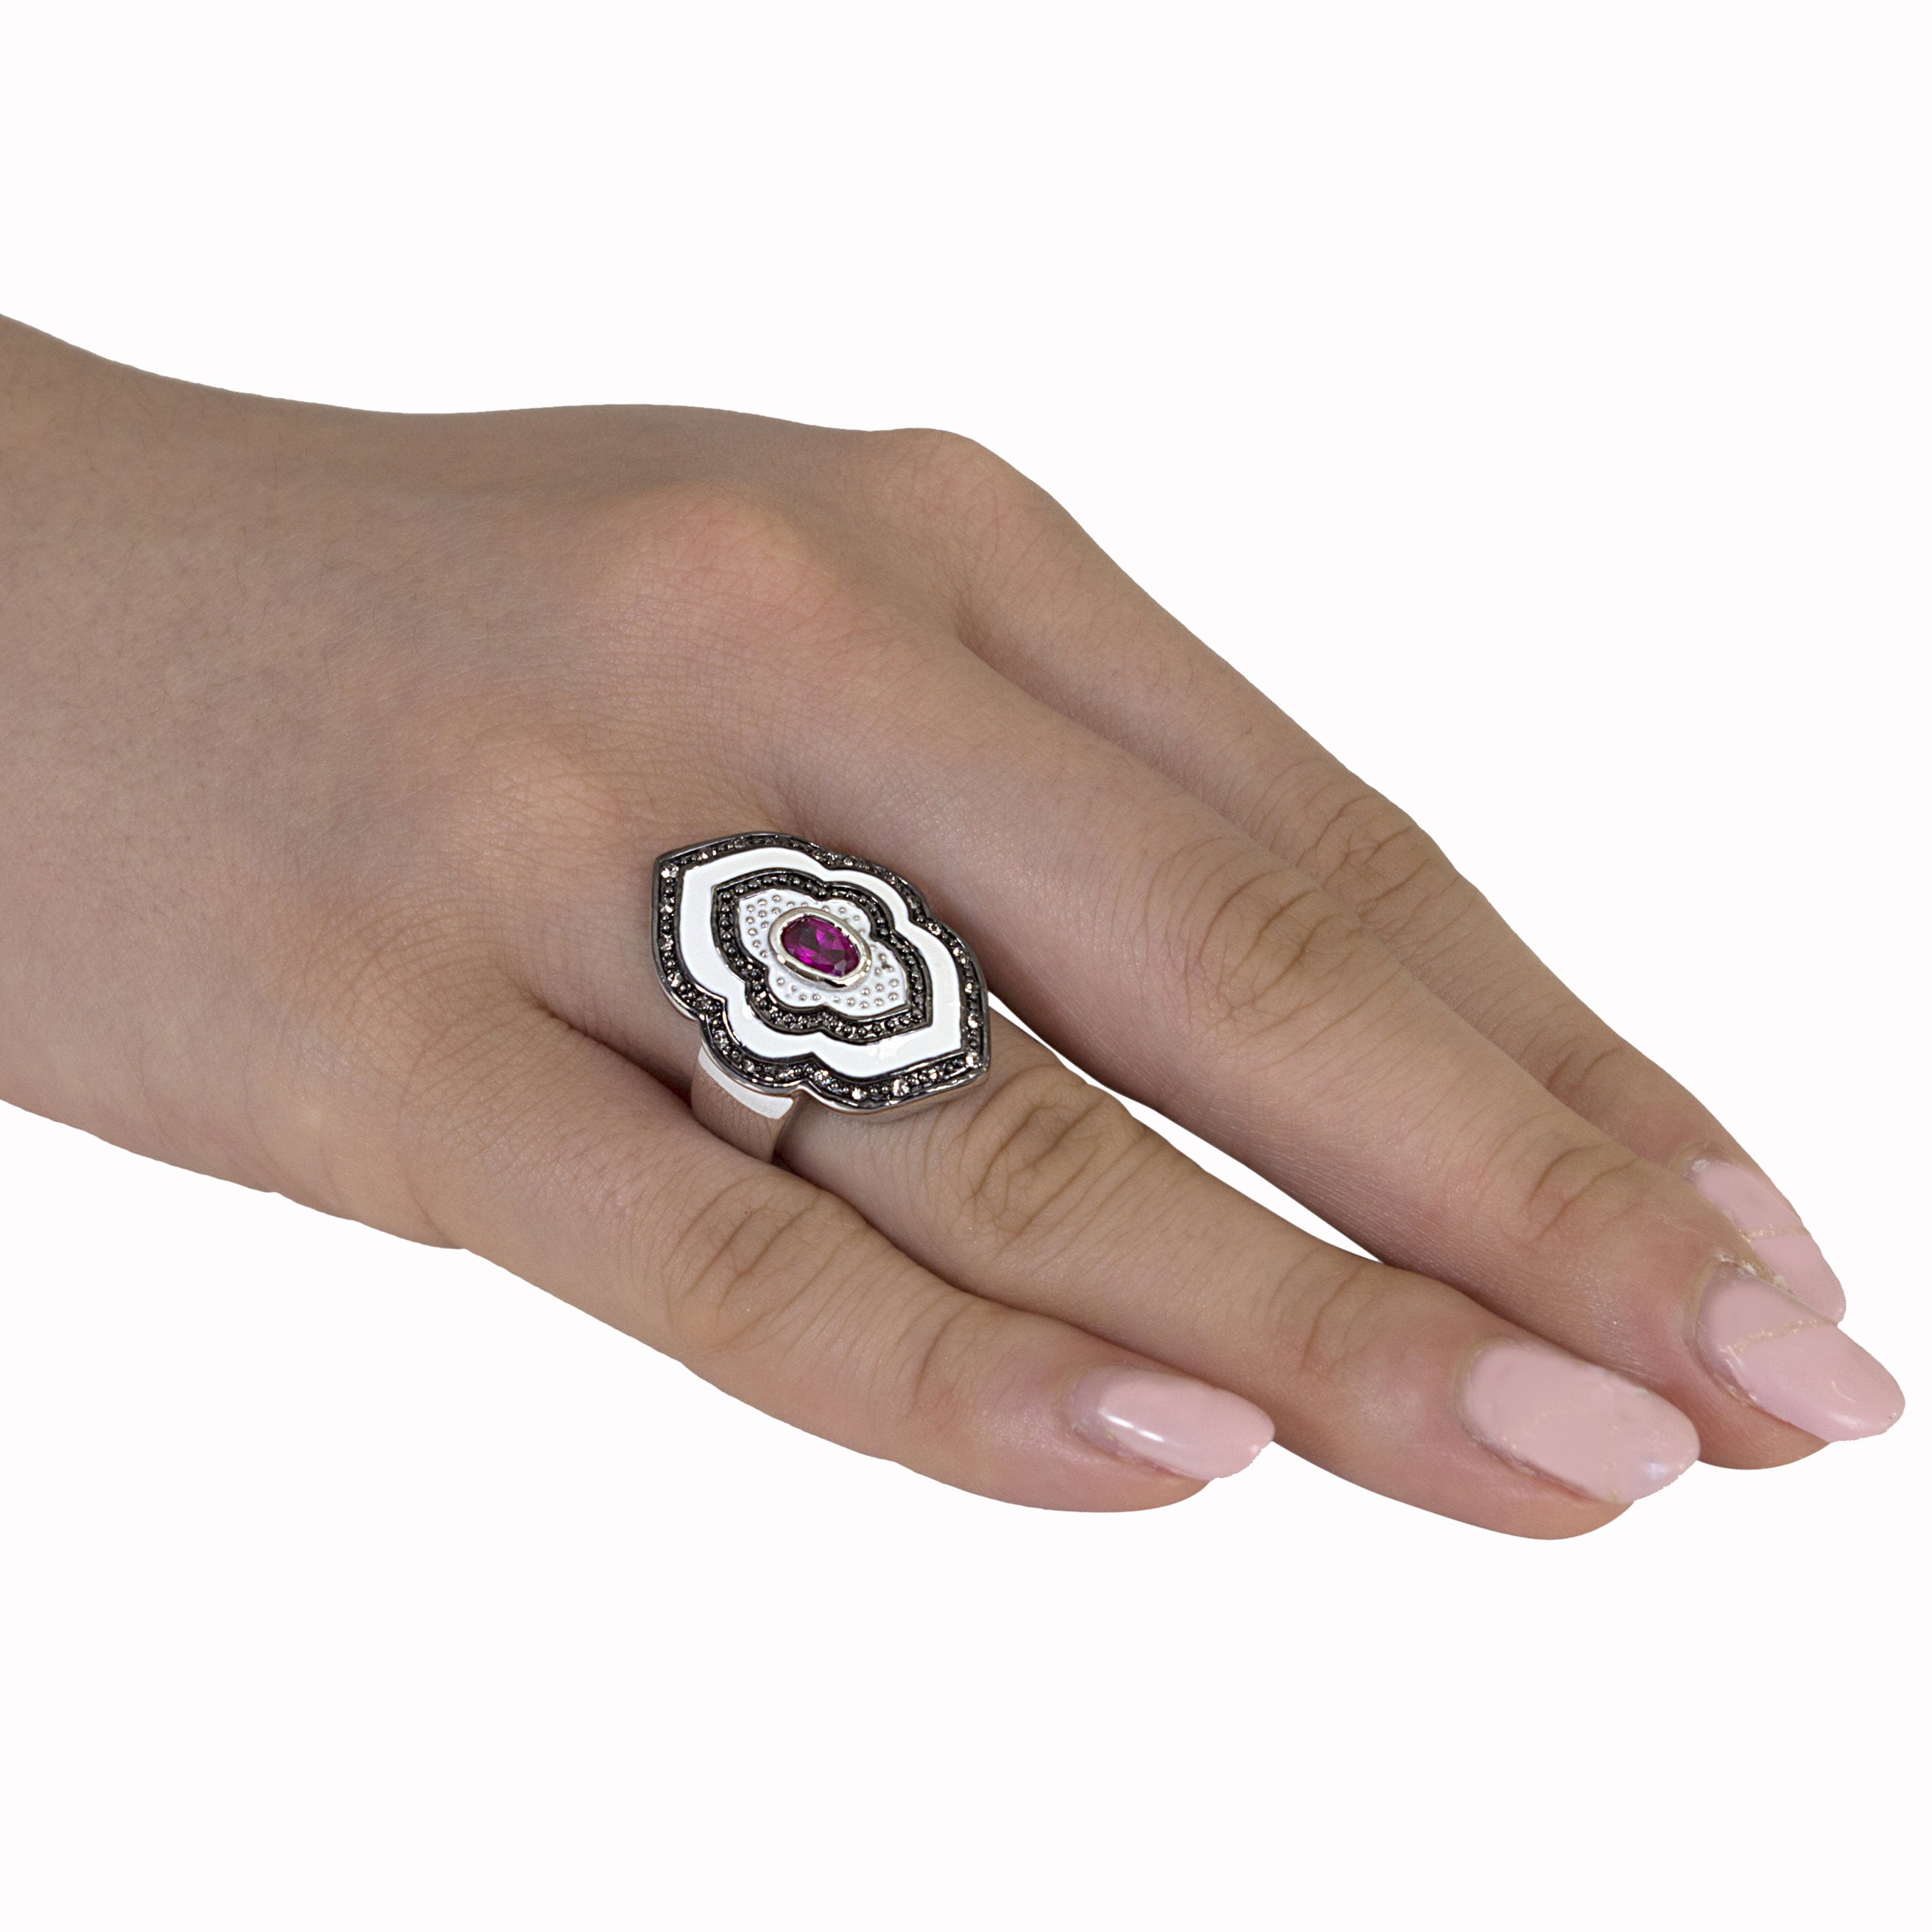 joy gifts co engagement gabriel for her jewelry n top layered banner this season holiday gift rings infinite guide